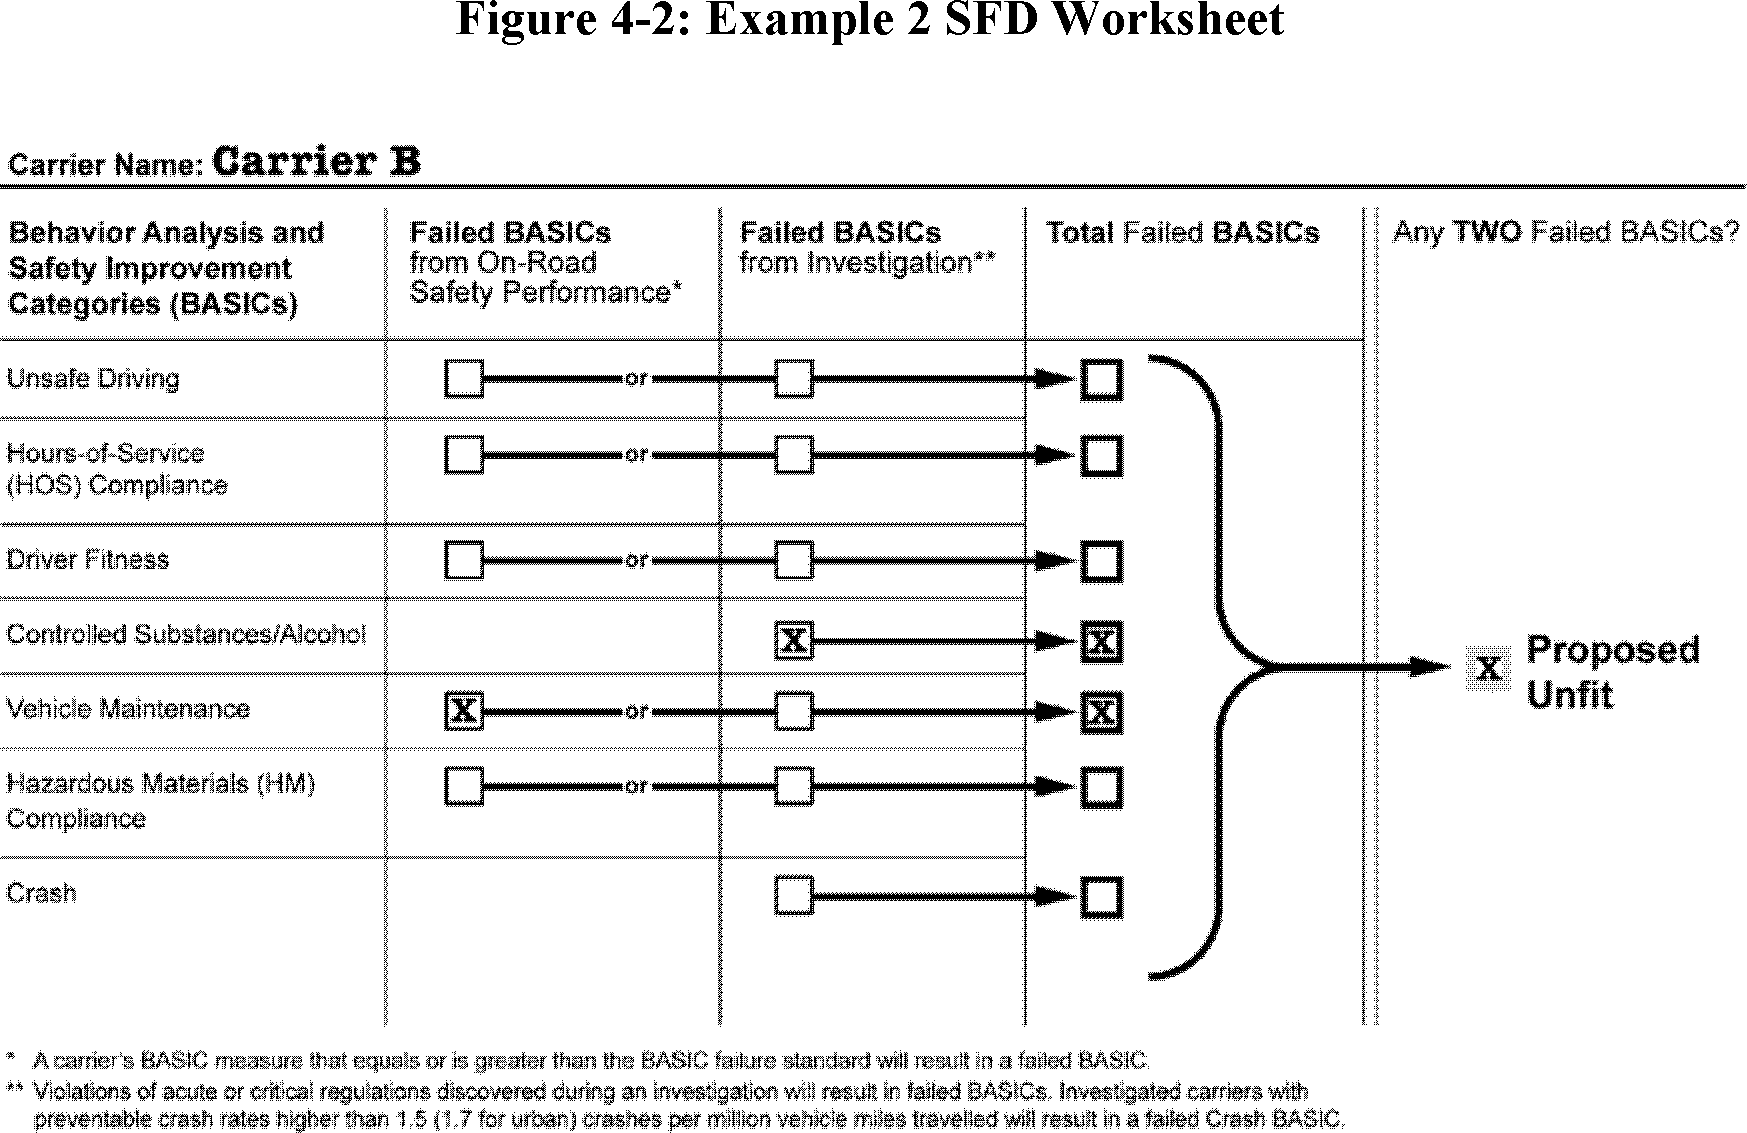 4.2.3 Example 3—Proposed Unfit Sfd Based On Investigation Findings: In The  Third Example (See Figure 4-3 Of This Appendix), Carrier C Did Not Have Any  Basic